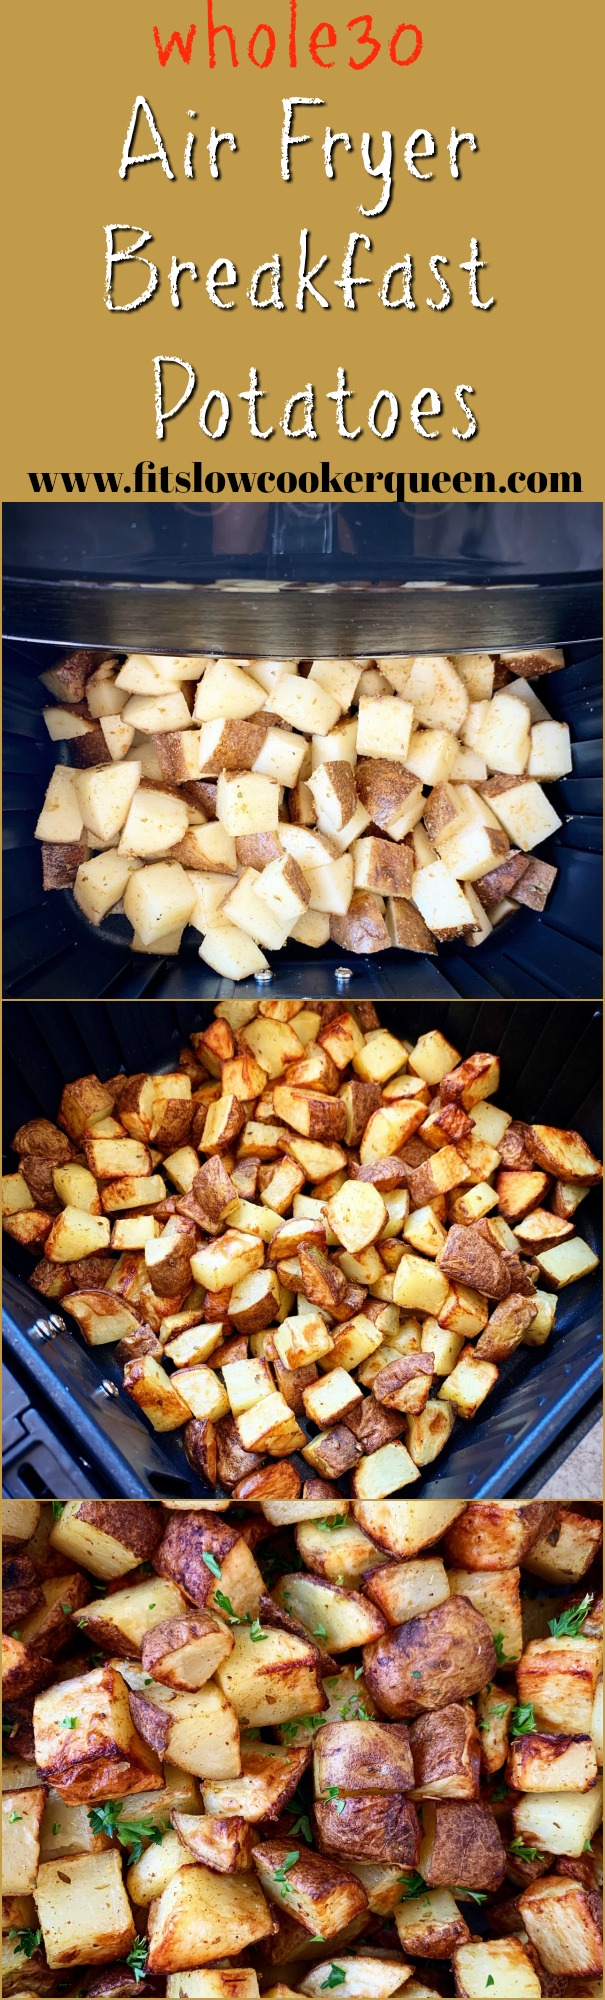 another pinterest pin for Air Fryer Breakfast Potatoes (Whole30)